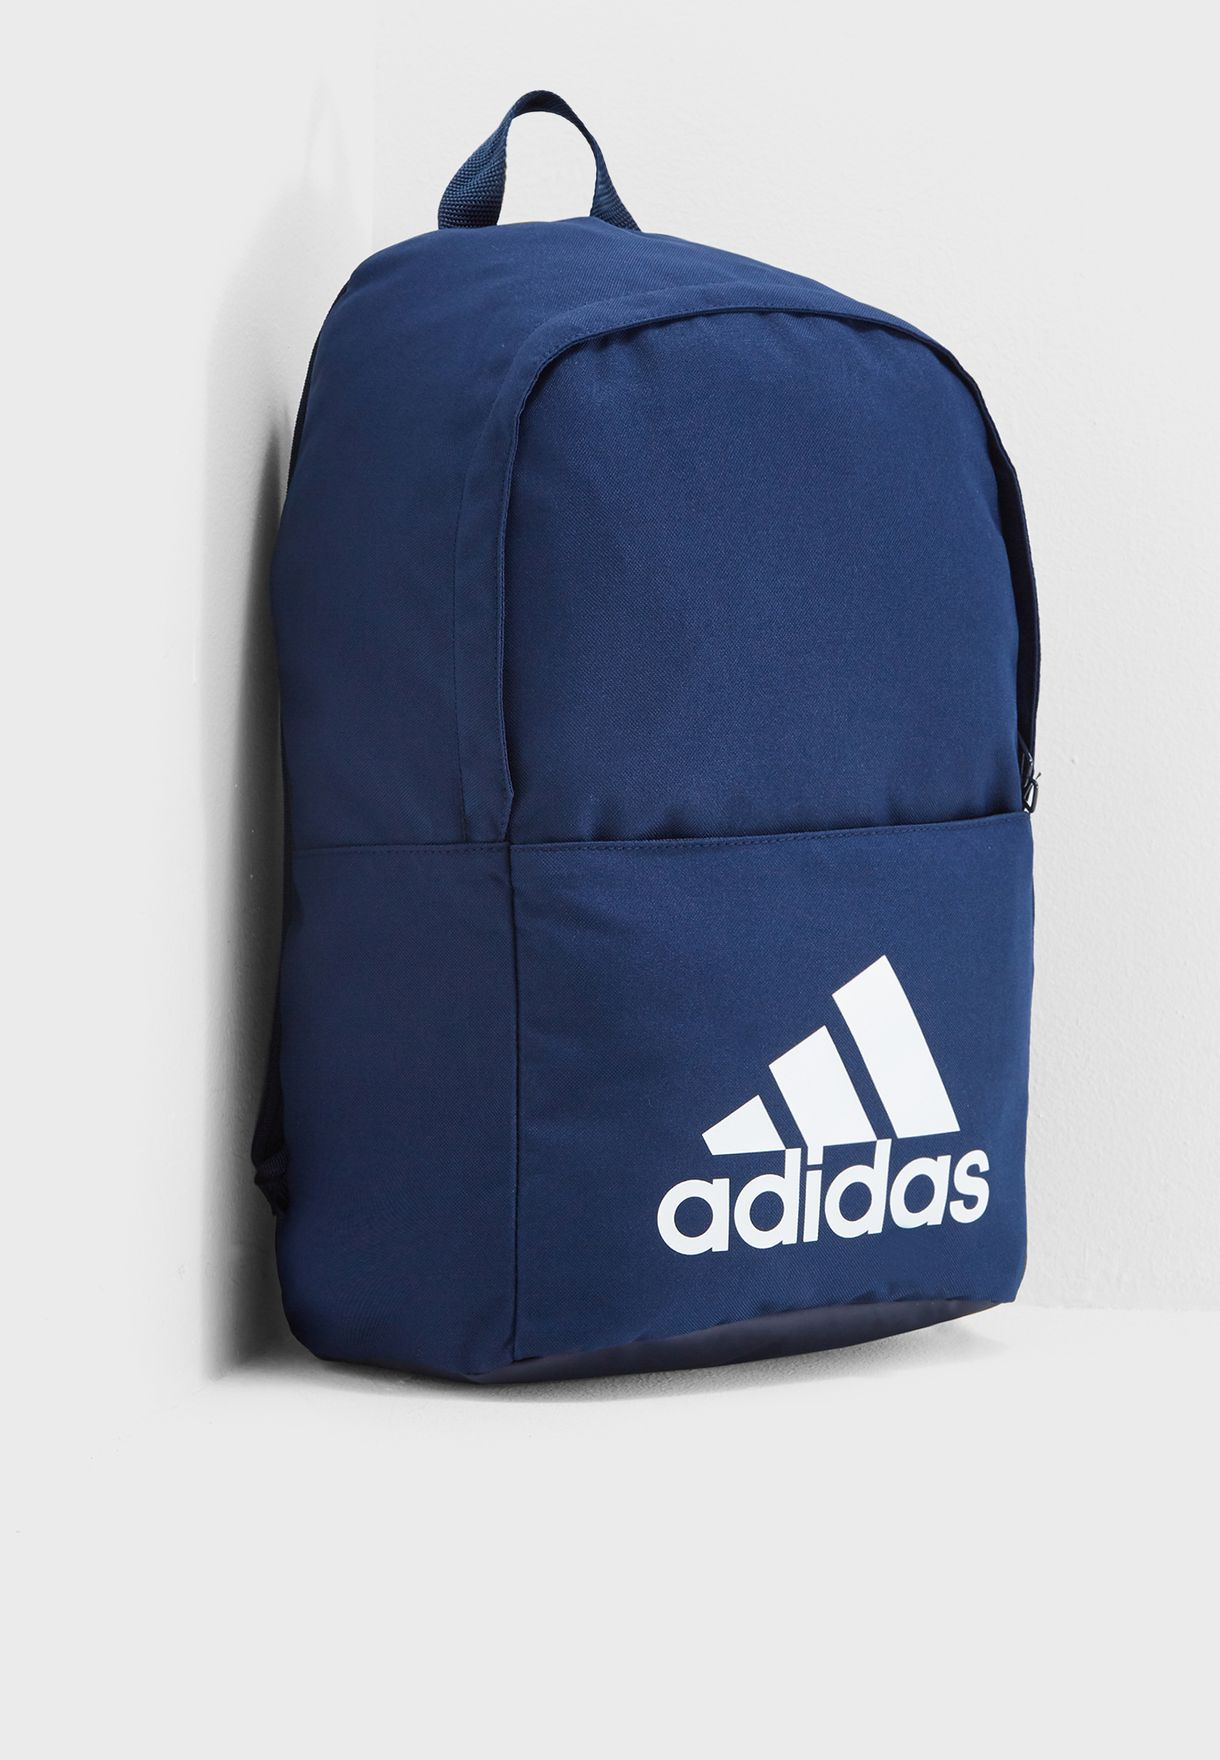 a2d39fa7dbf3 Shop adidas navy Classic Backpack DM7677 for Men in UAE - AD476AC92DUL